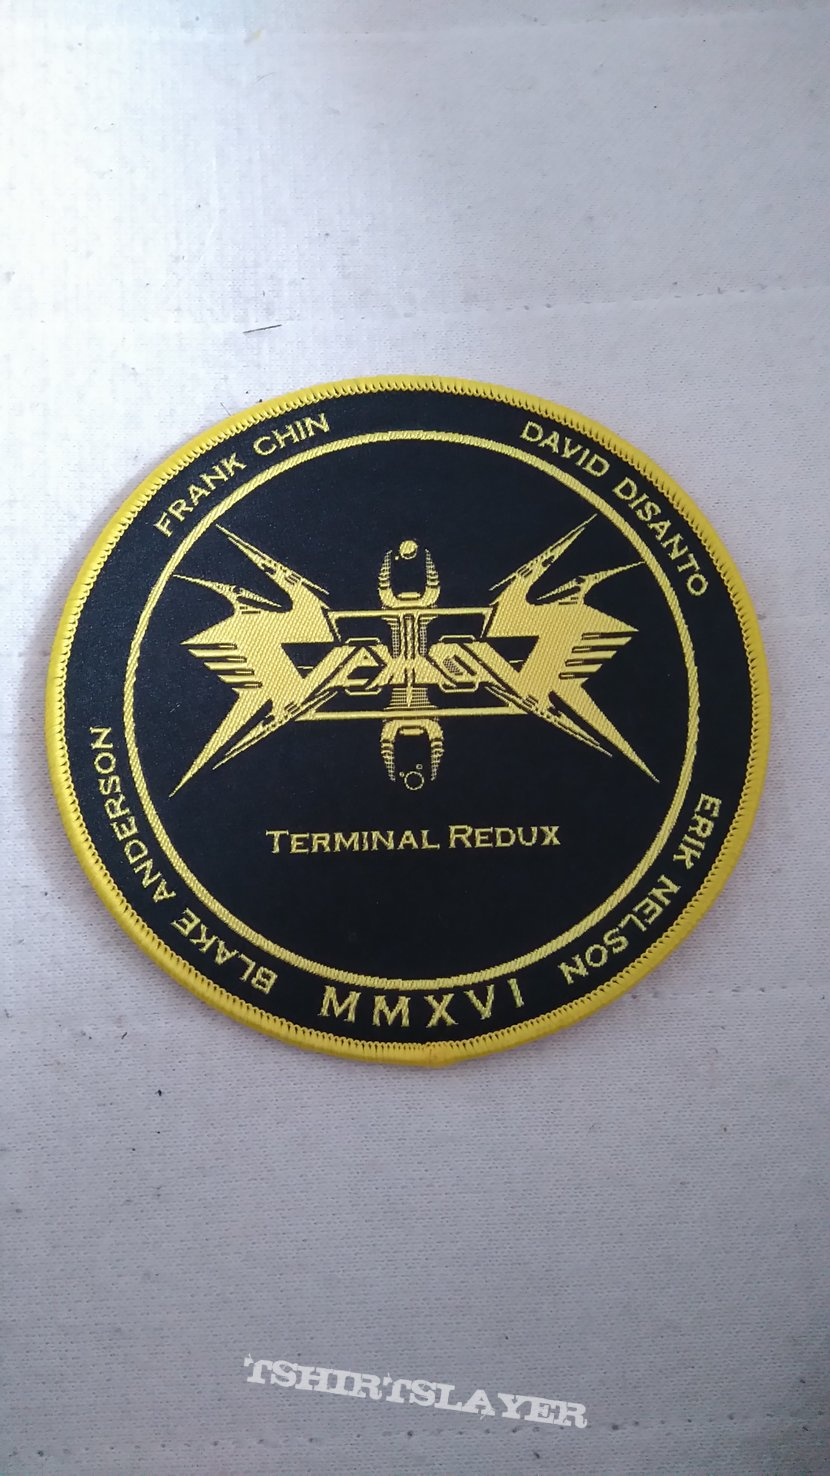 Vektor 'Terminal Redux' limited edition with patch.